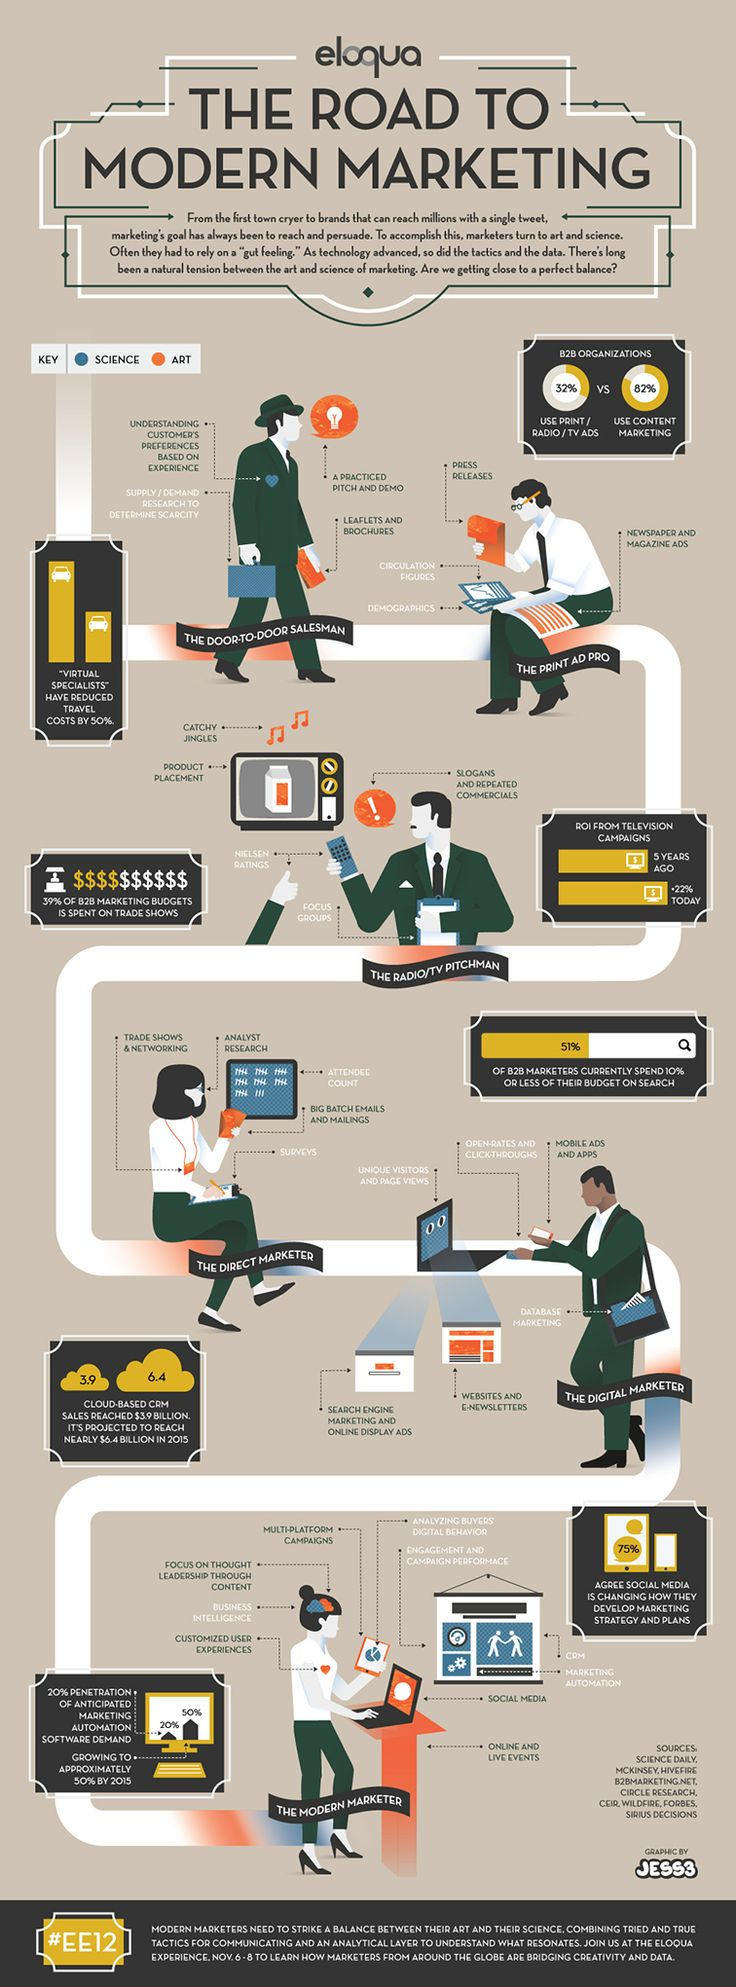 #Infographie : la route vers le #marketing moderne